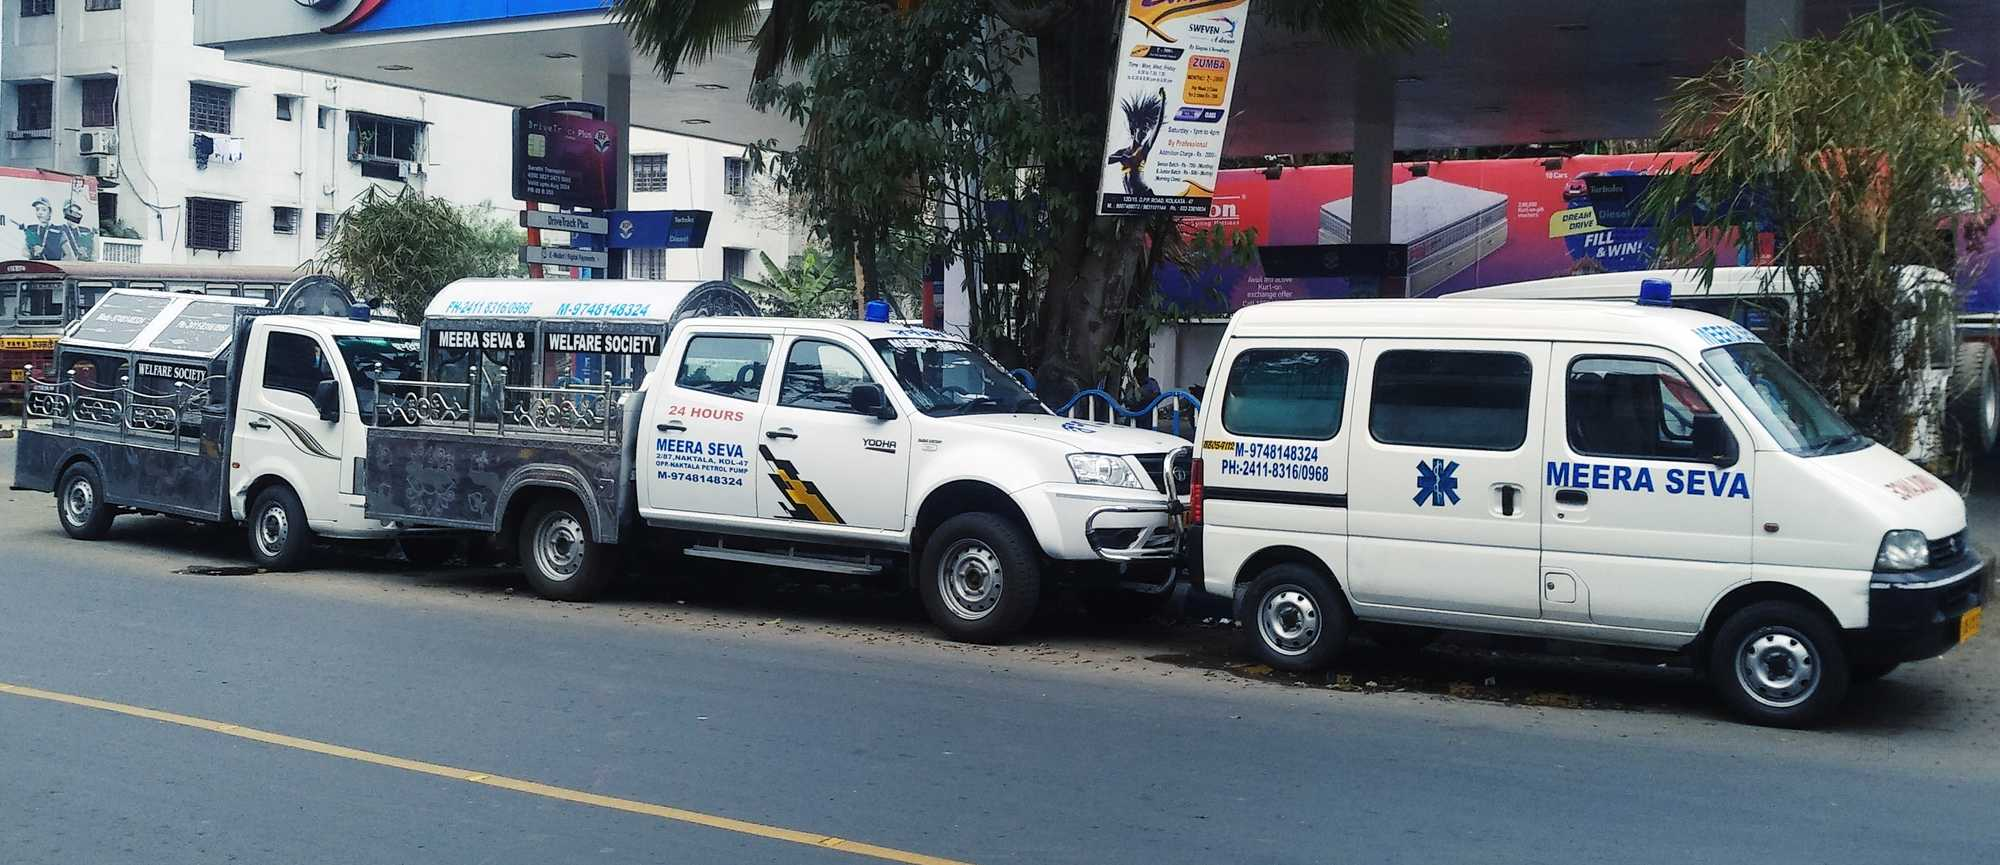 Top 100 24 Hours Ambulance Services in Kolkata - Best 24 Hrs